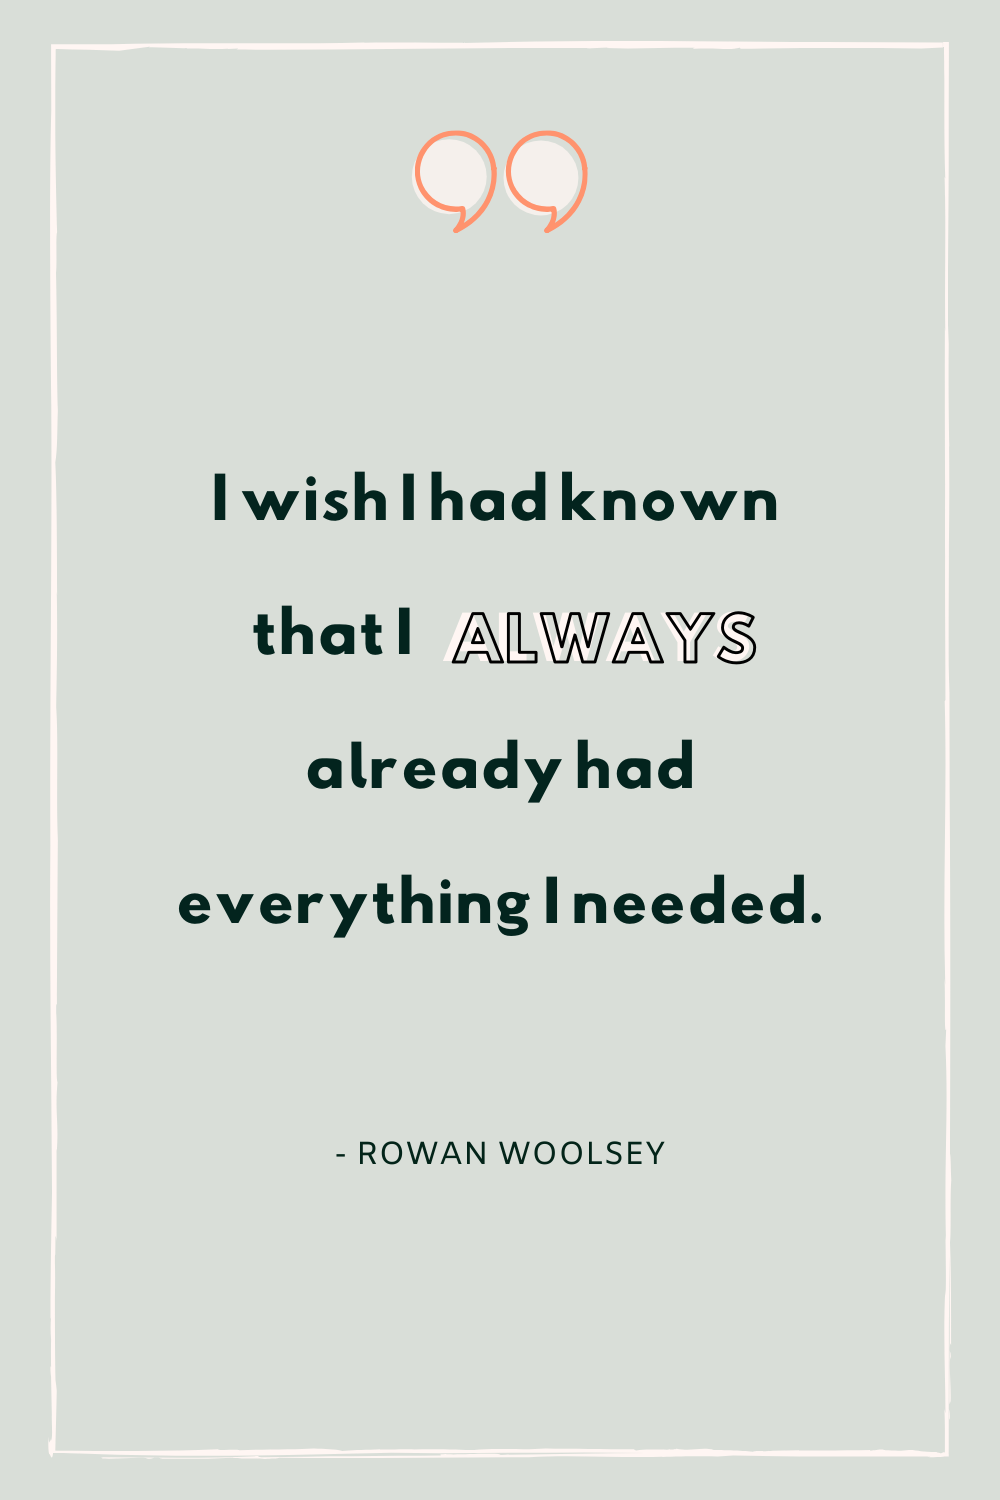 Power Button Life, Rowan Woolsey, Mindset Blog, journal tips, mindset tips, motivation quote, you are enough, worthy